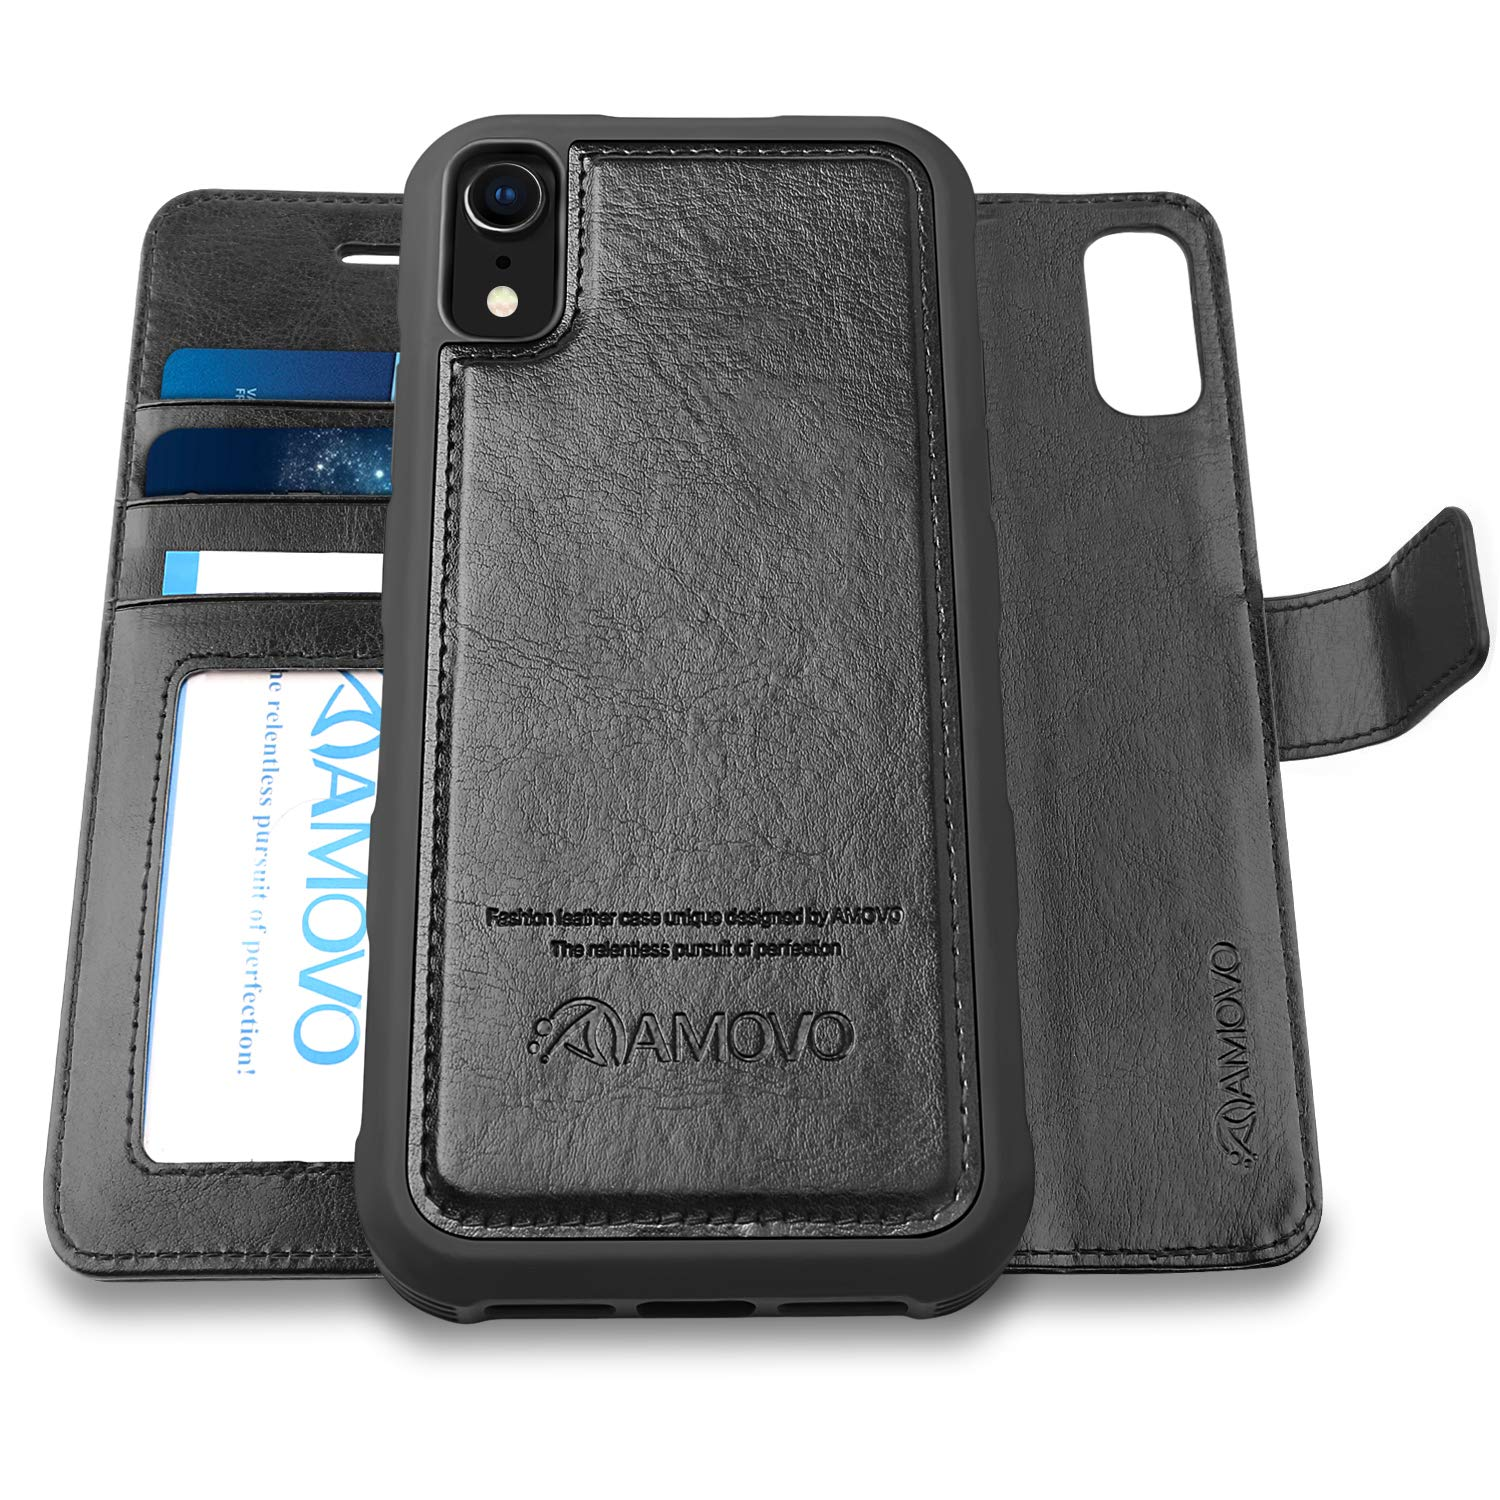 [Upgraded Version] AMOVO Case for iPhone XR [2 in 1] [Wireless Charger] iPhone XR Wallet Case Detachable [Vegan Leather] iPhone XR (6.1'') Flip Case with Gift Box Package (iPhone XR, Black) by Amovo